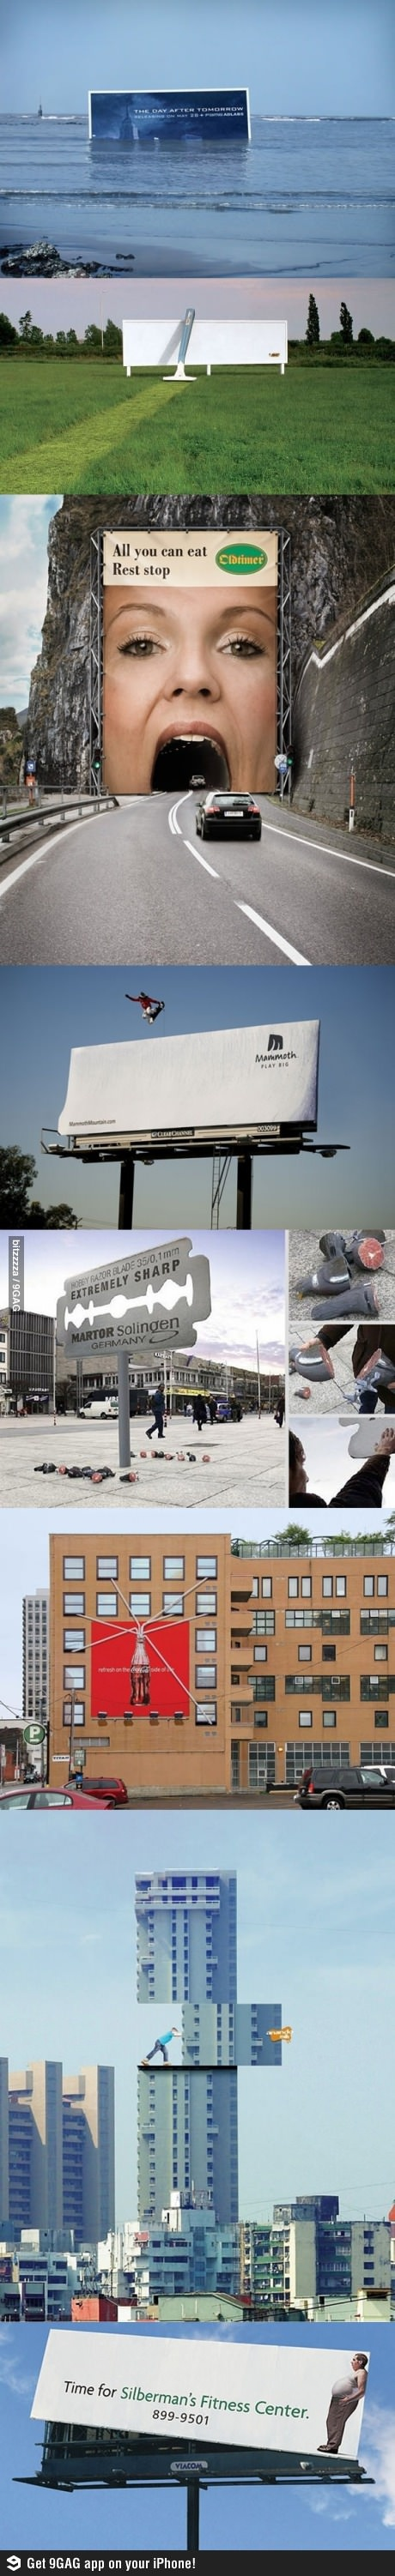 billboards that actually  make a real statement  instead of stating  nothing